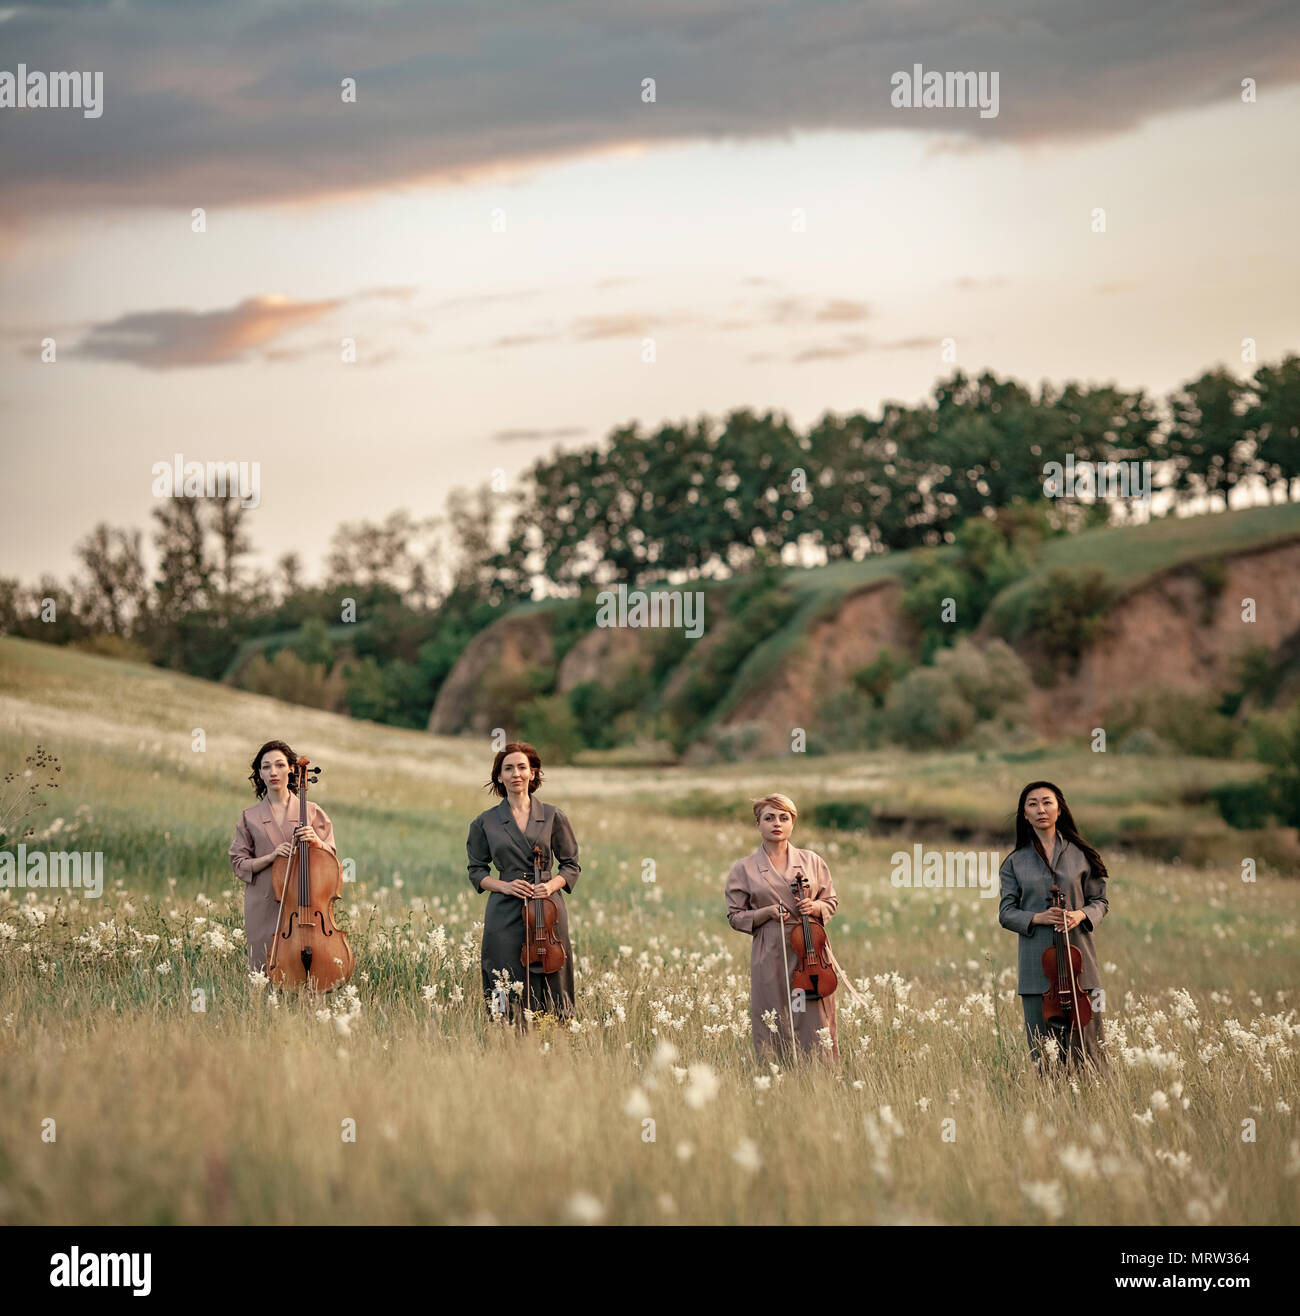 Female musical quartet with three violins and one cello stands on flowering meadow against backdrop of picturesque sky with clouds. - Stock Image